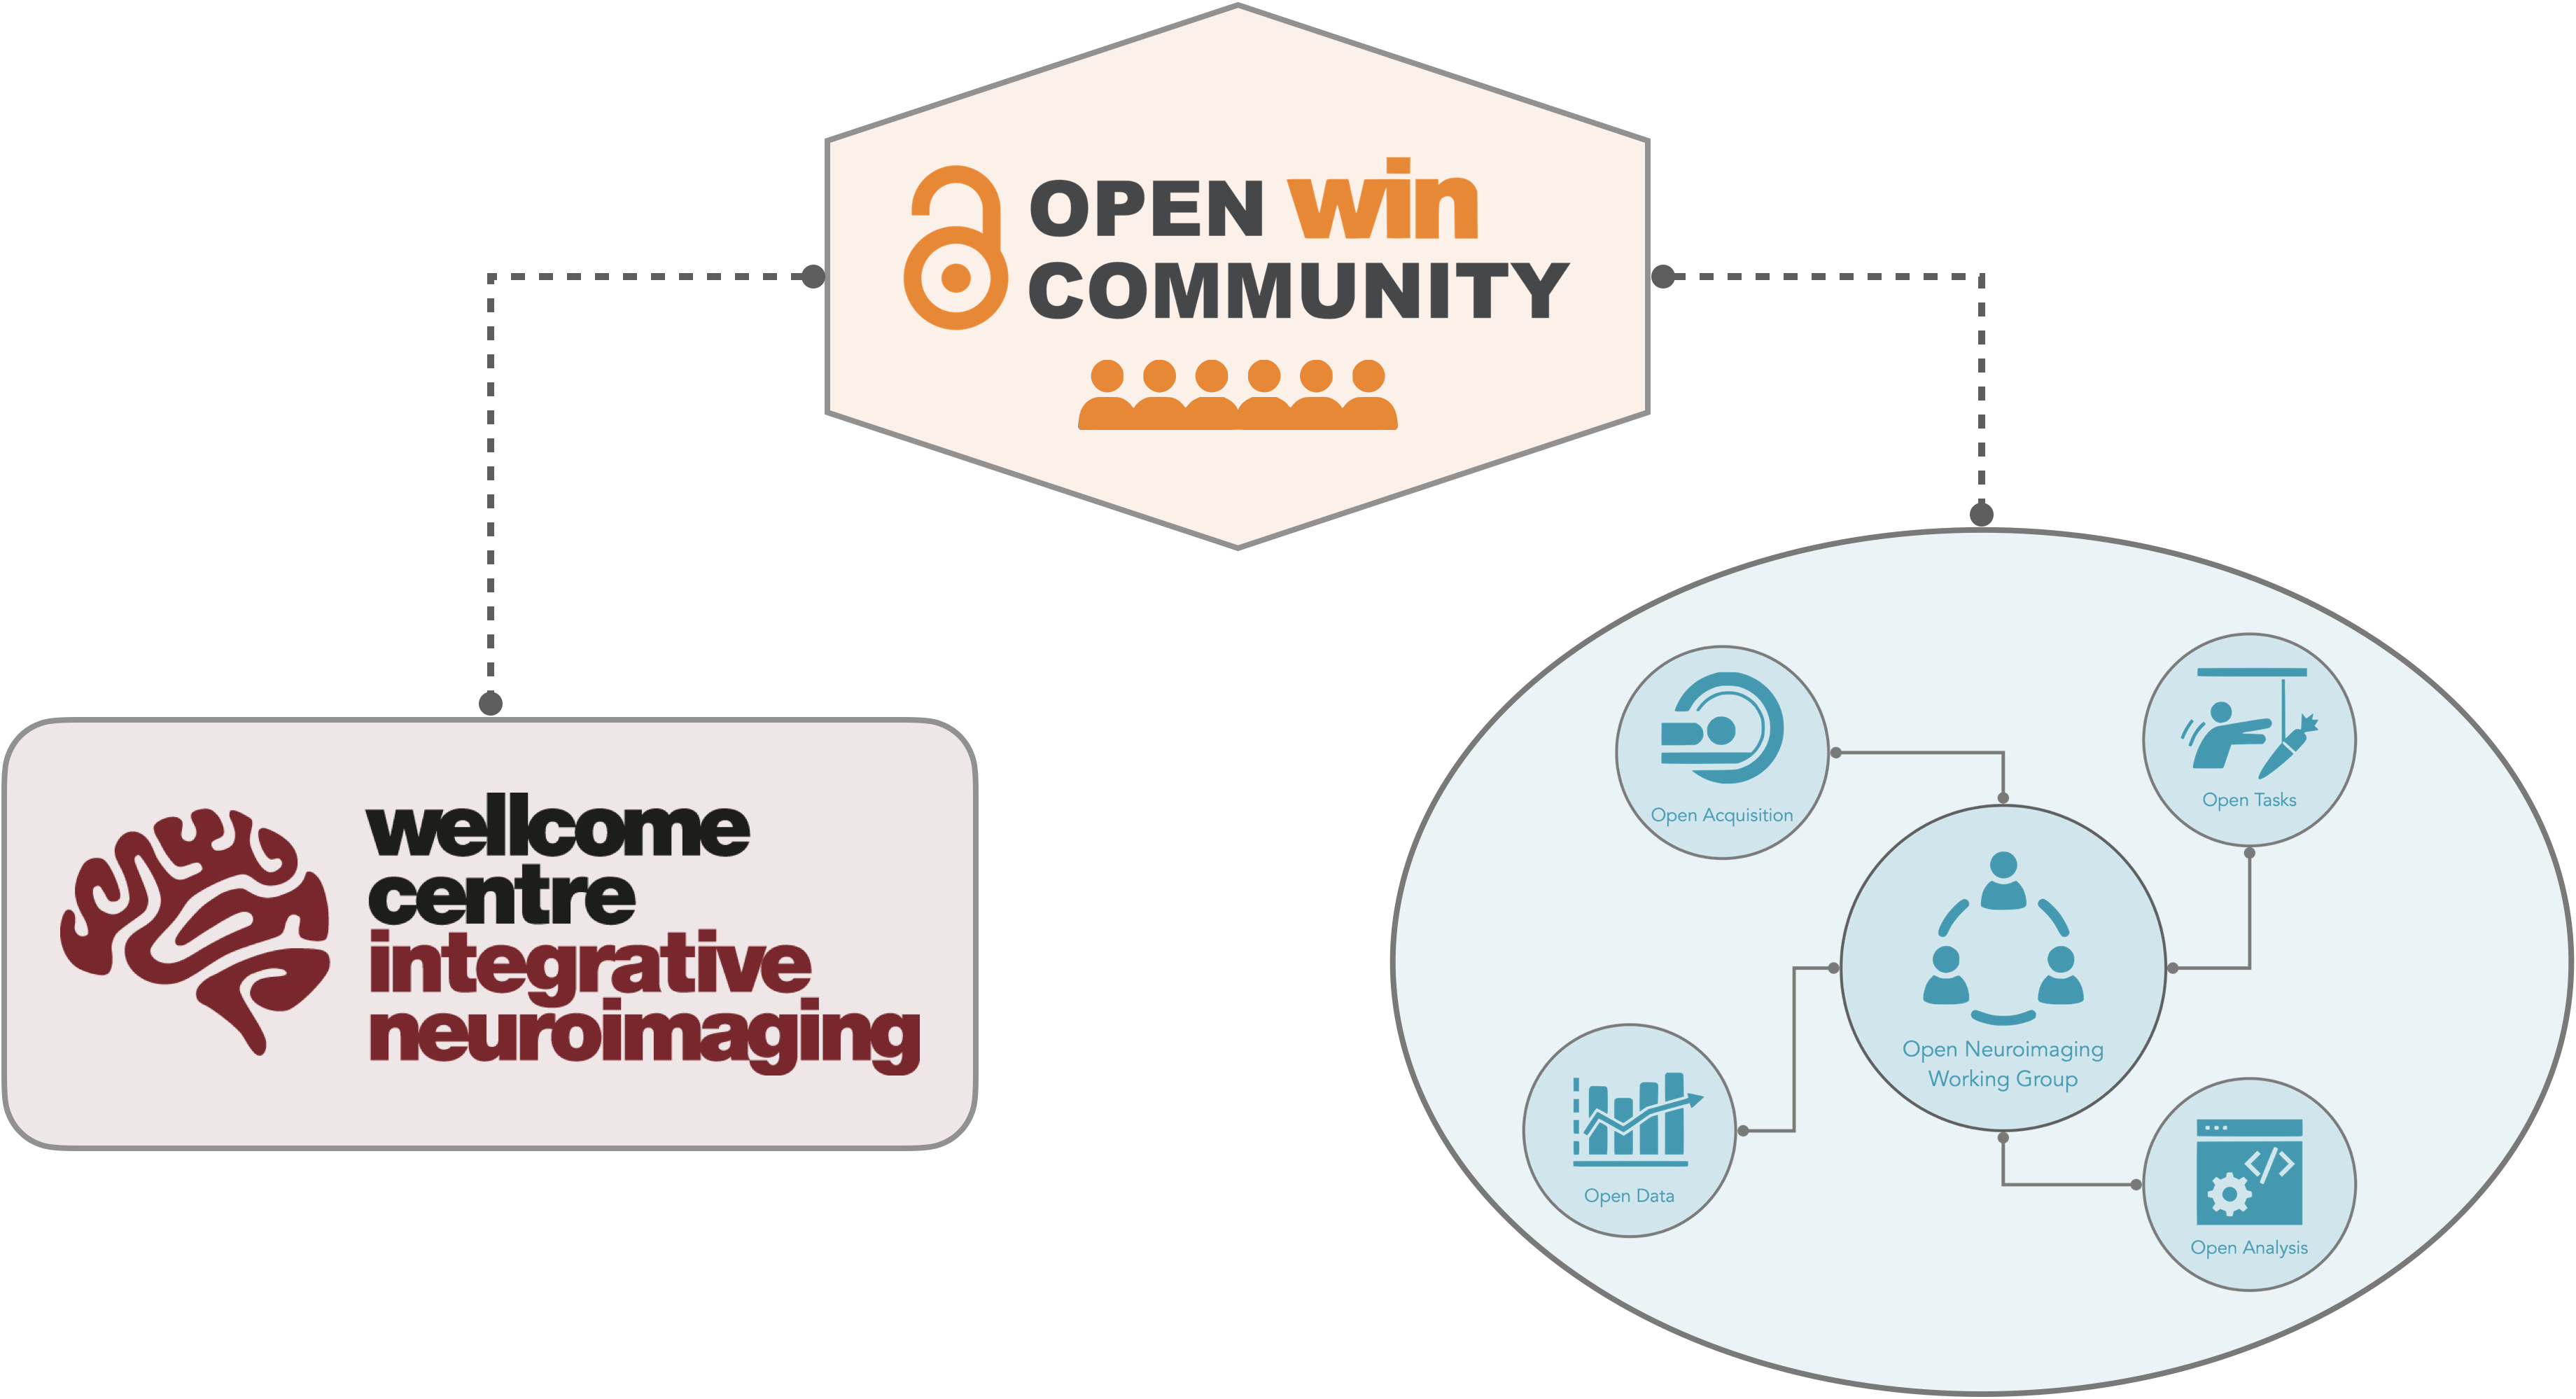 Components of the Open WIN community.